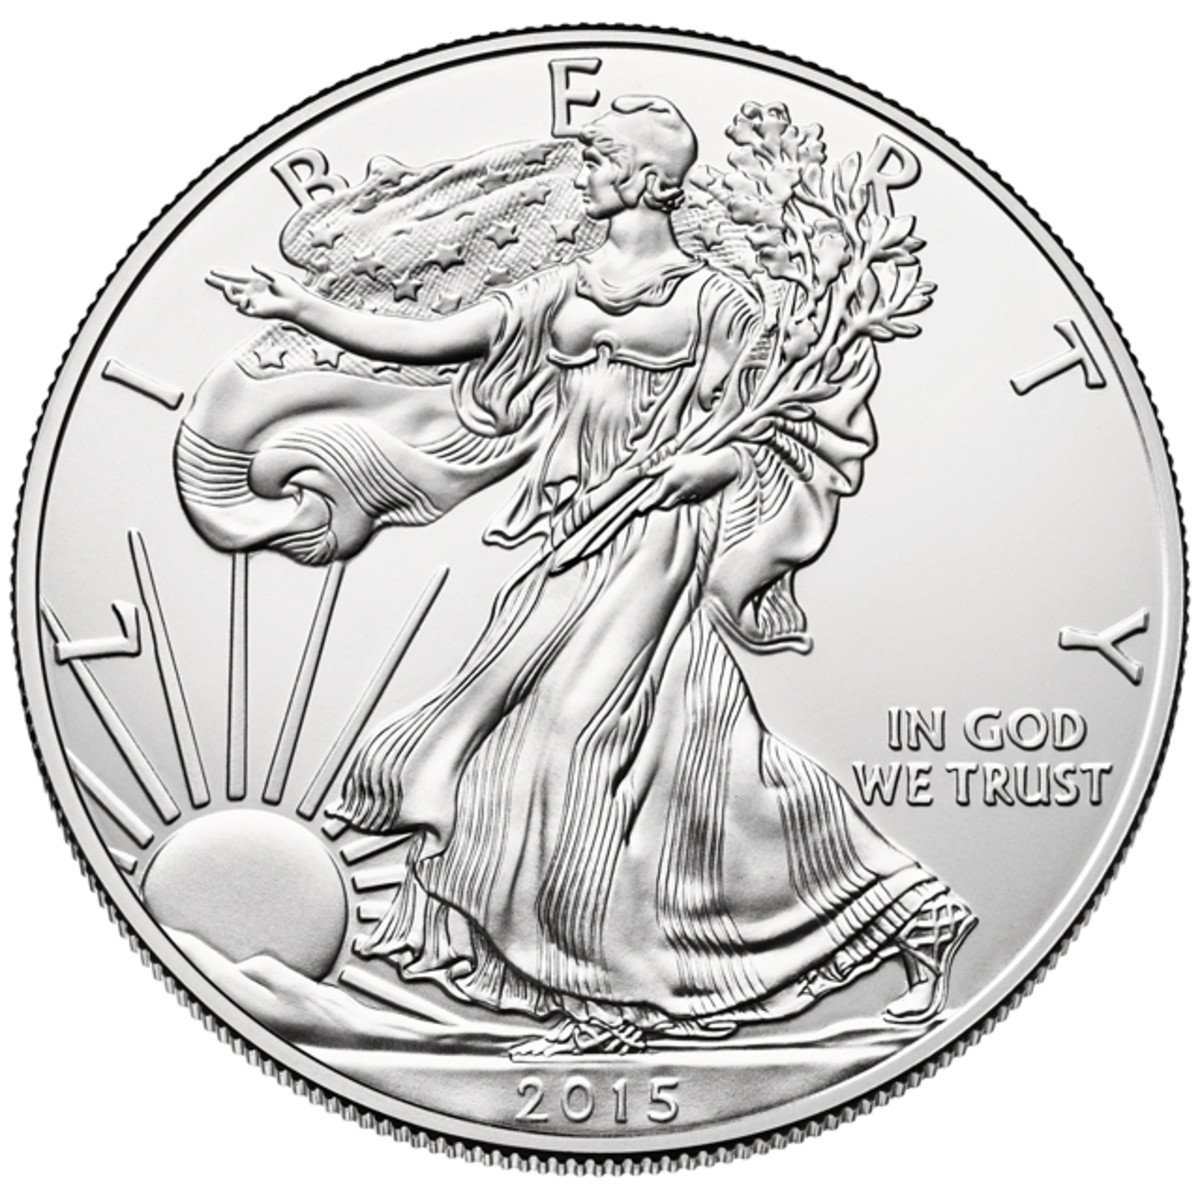 The 2015 silver Eagle set a new annual sales record on Nov. 30 - and still has room to improve on it.